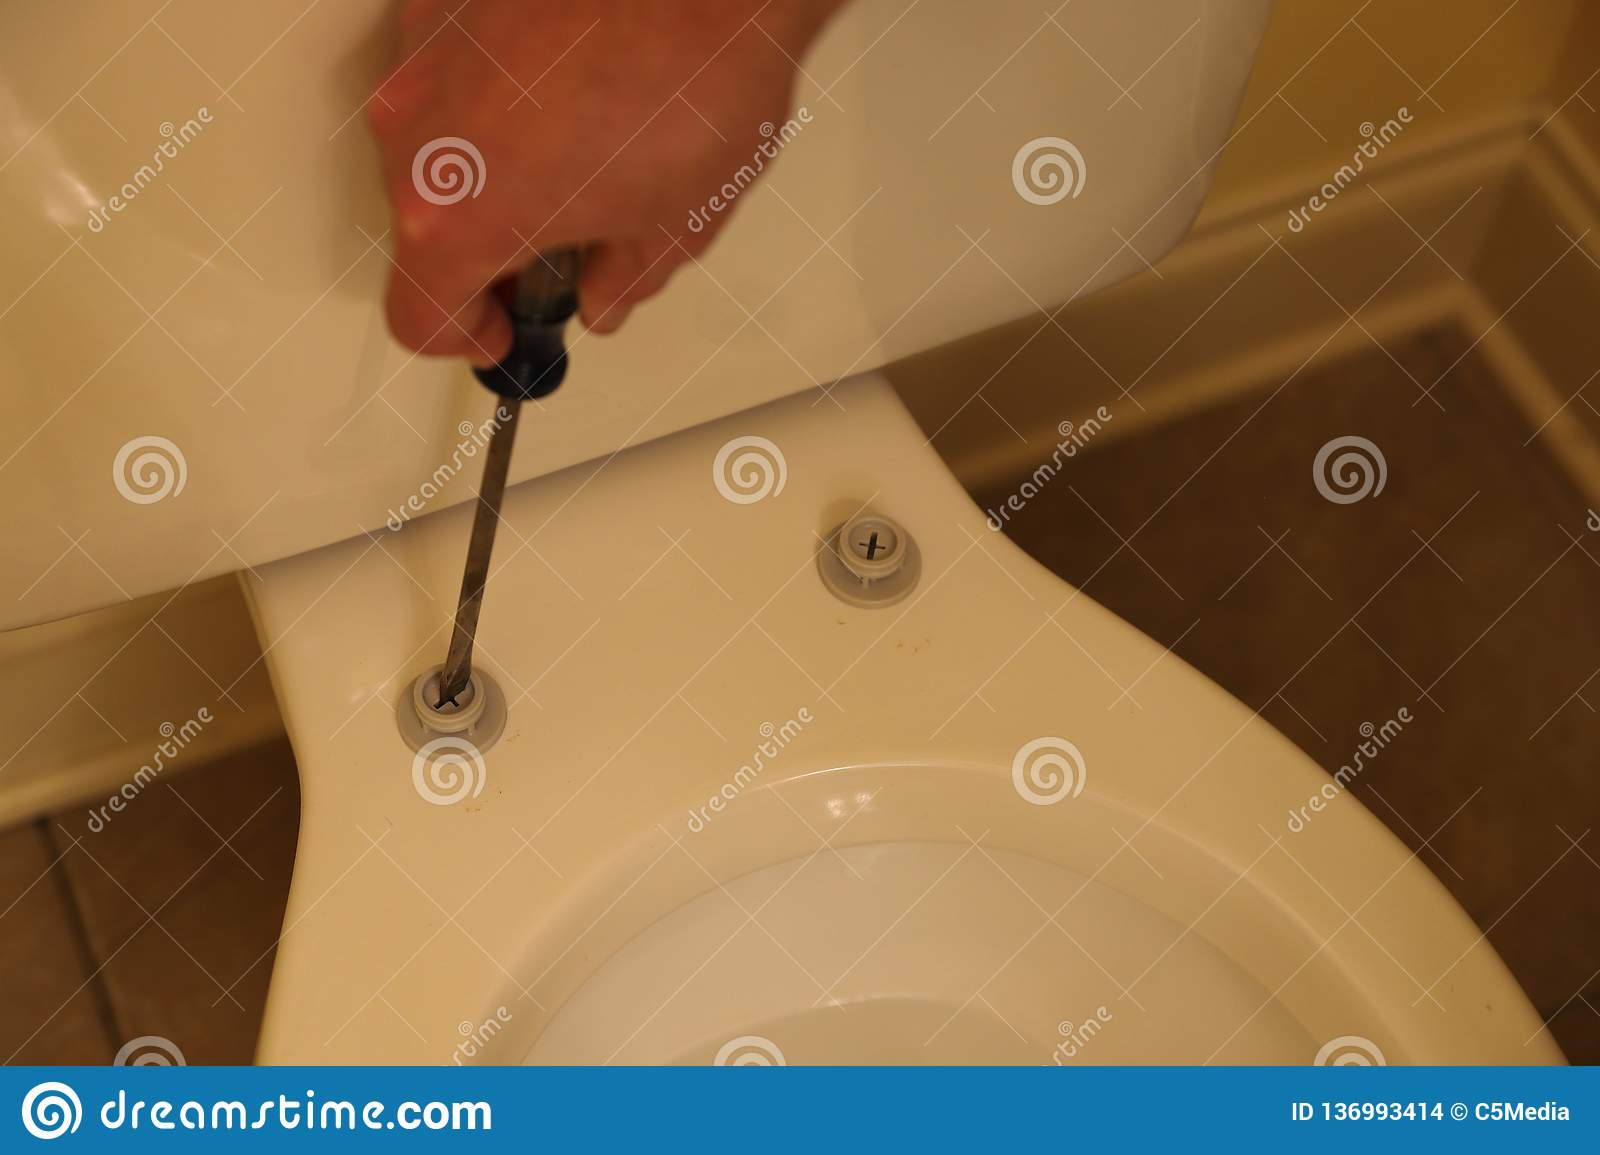 Plumber repairing toilet seat. Plumber installing screws to replace new seat on toilet in home bathroom stock images